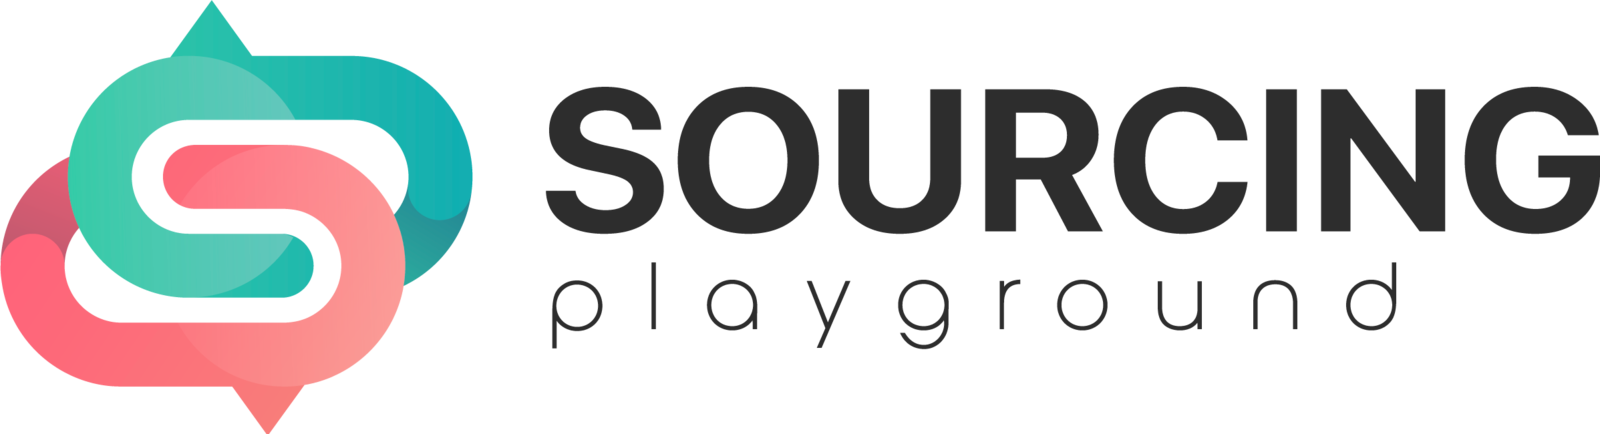 Sourcing Playground Helpdesk